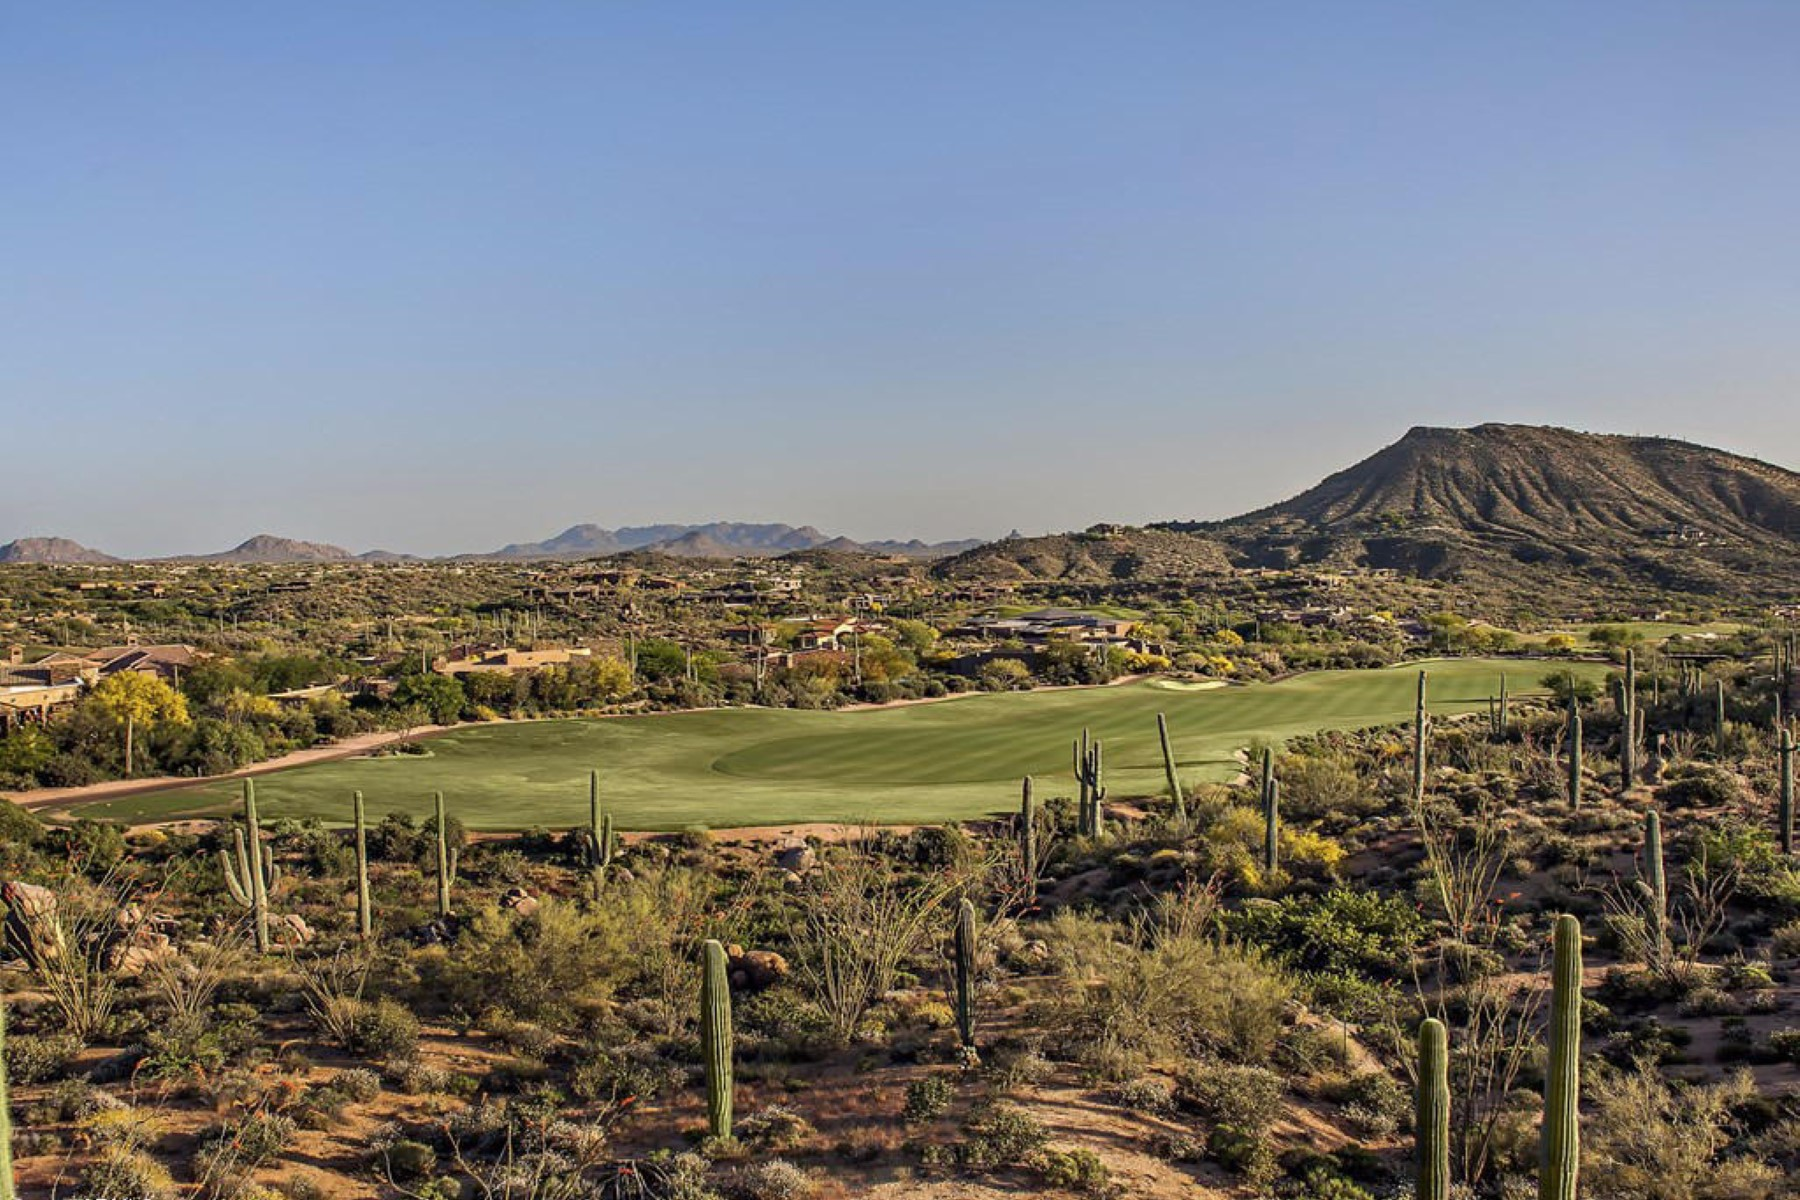 Terreno para Venda às Stunning Desert Mountain Homesite 41201 N 96th Street Scottsdale, Arizona 85262 Estados Unidos